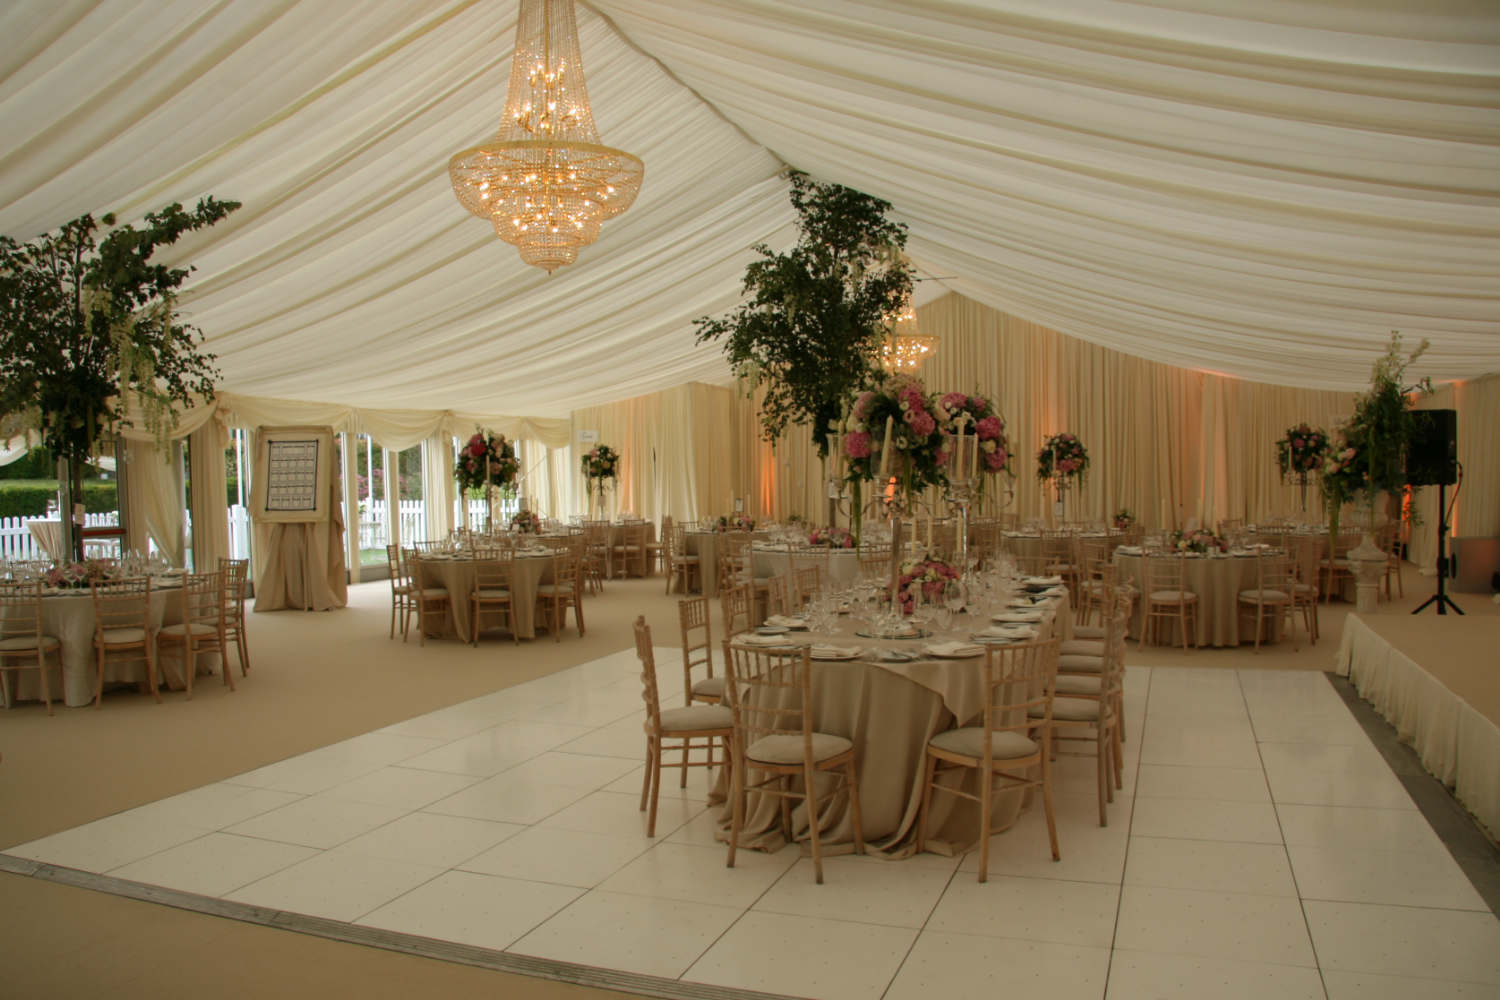 elegant wedding event draping for a marquee styling with golden chandelier, ivory drape ceiling and walls, white chiavary chairs and high floral center pieces